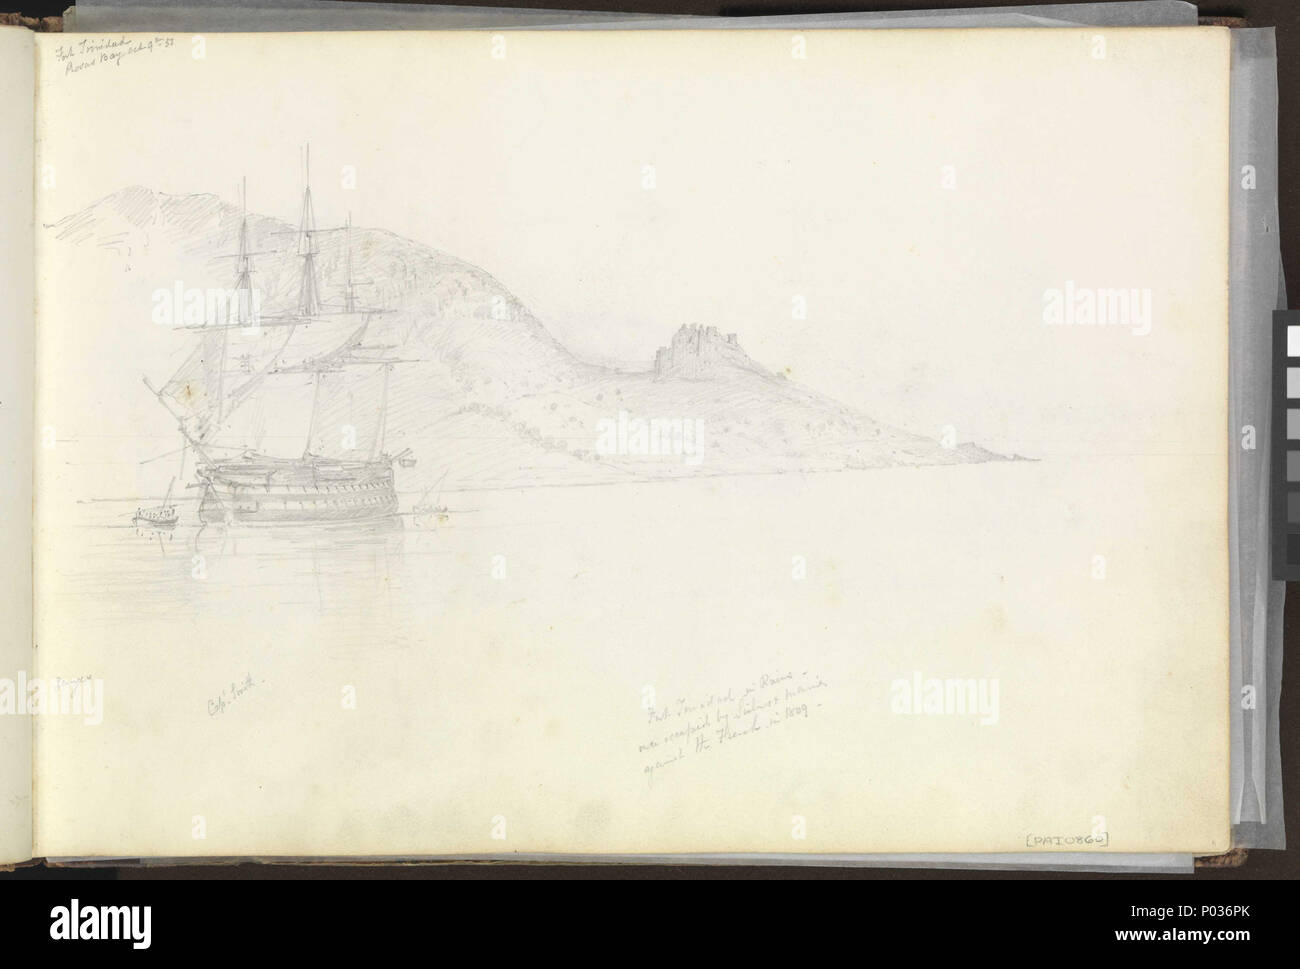 .  English: (Recto) HMS 'Ganges' off Fort Trinidad, Rosas Bay, south-eastern Spain, 9 October 1851; (Verso) Lord Nelson's House, Port Mahon, 12 November 1851 No. 12 of 36 (PAI0849 - PAI0884). (Recto) Inscribed top left, 'Fort Trinidad / Rosas Bay Oct 9th 1851' and along the bottom, 'Ganges', 'Capt Smith' and 'Fort Trinidad in Ruins - / once occupied by Sailors & Marines / against the French in 1809-'. The last note refers to Captain Lord Cochrane (then of of the 'Imperieuse' under Lord Collingwood), whose 12-day defence of the fort against overwhelming odds in fact took place in November 1808, Stock Photo